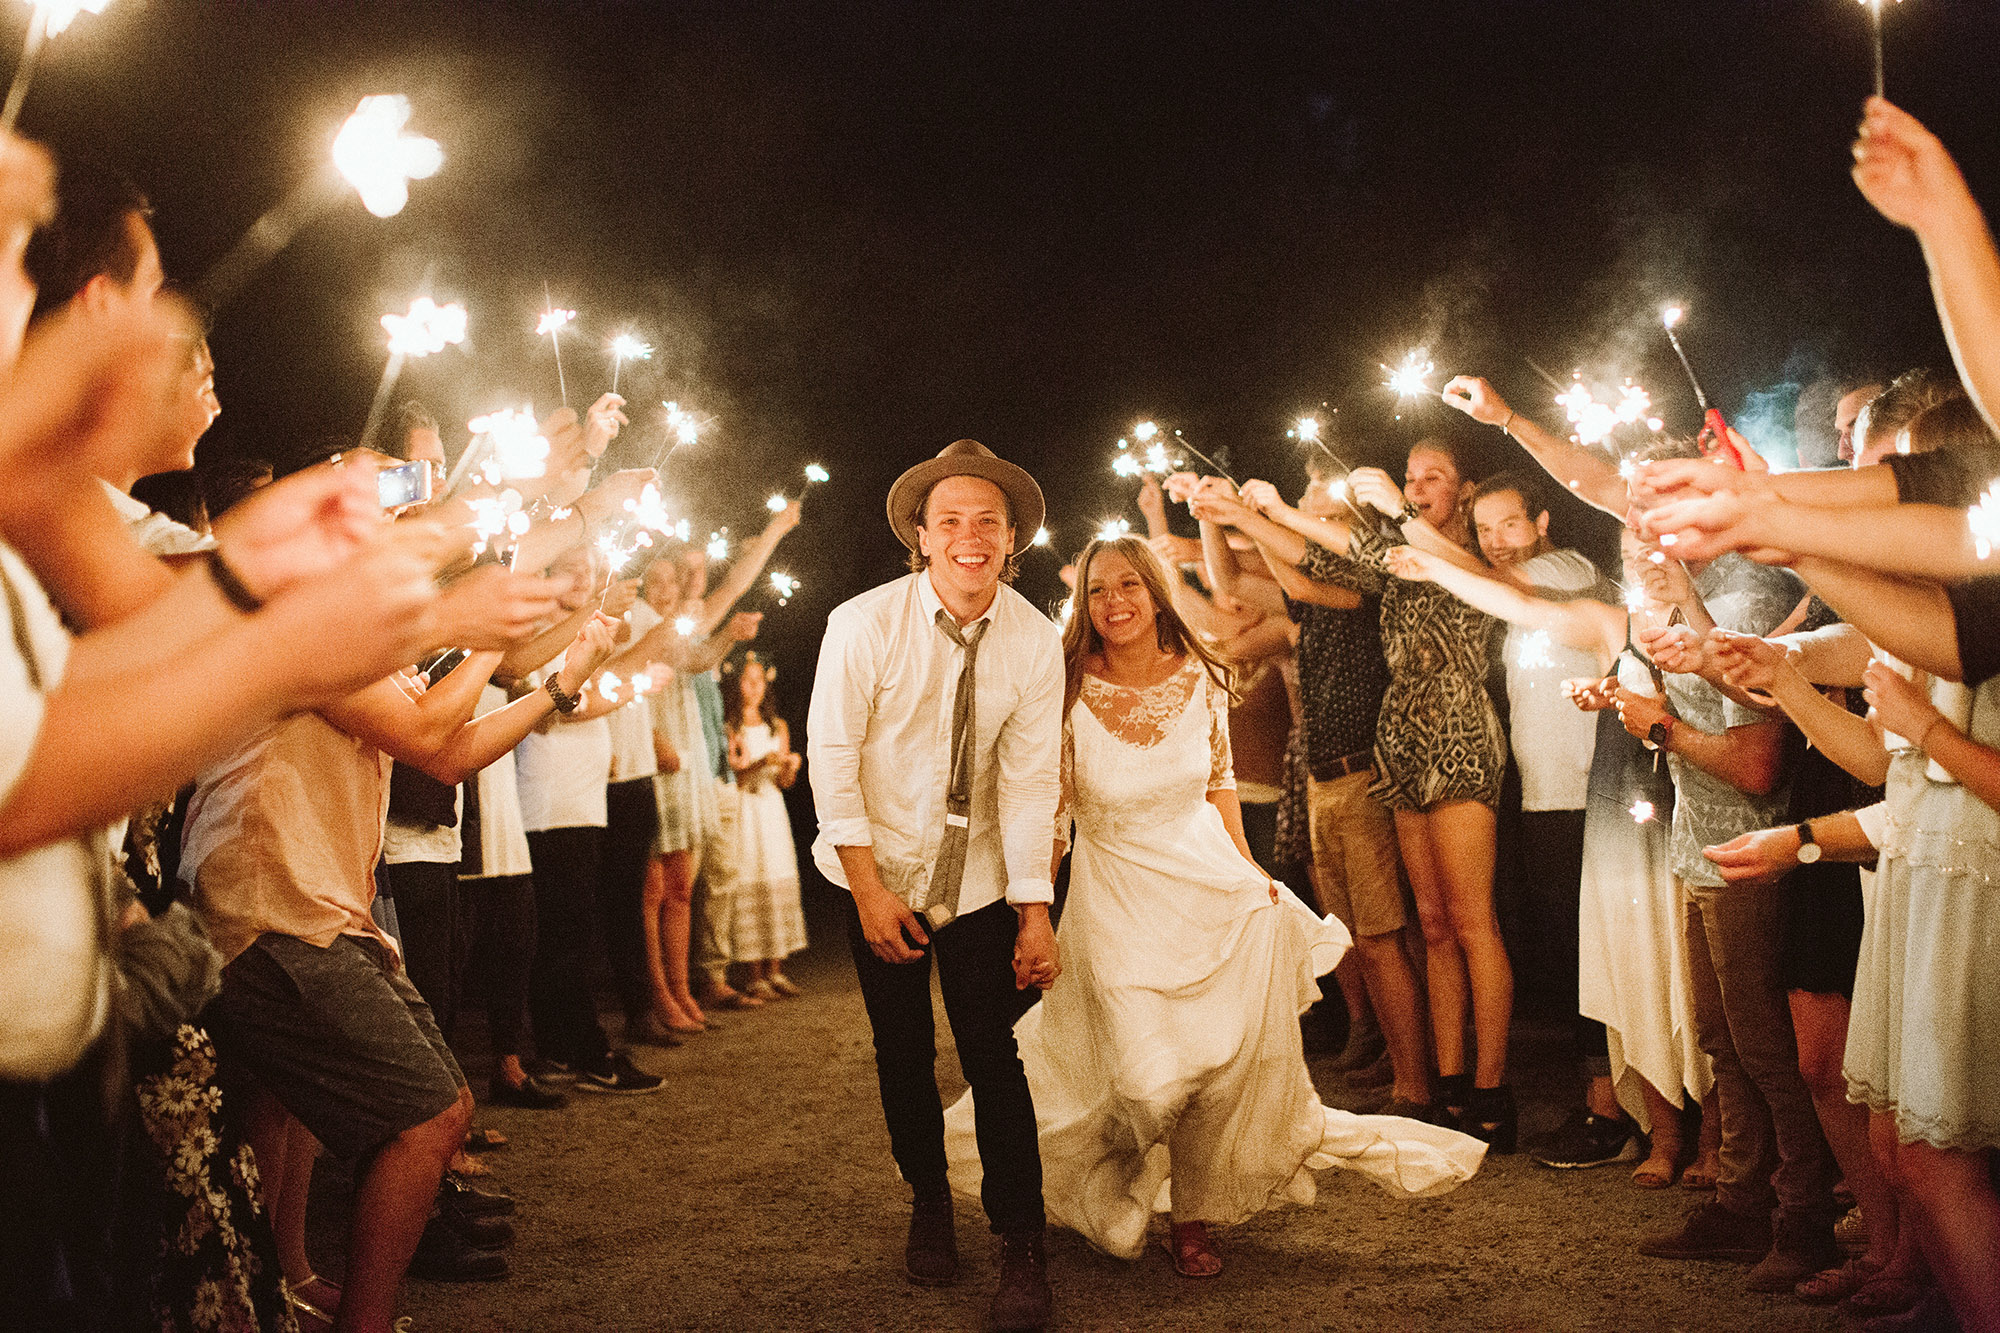 A wedding couple is walking along an aisle and their guests are holding up sparklers.